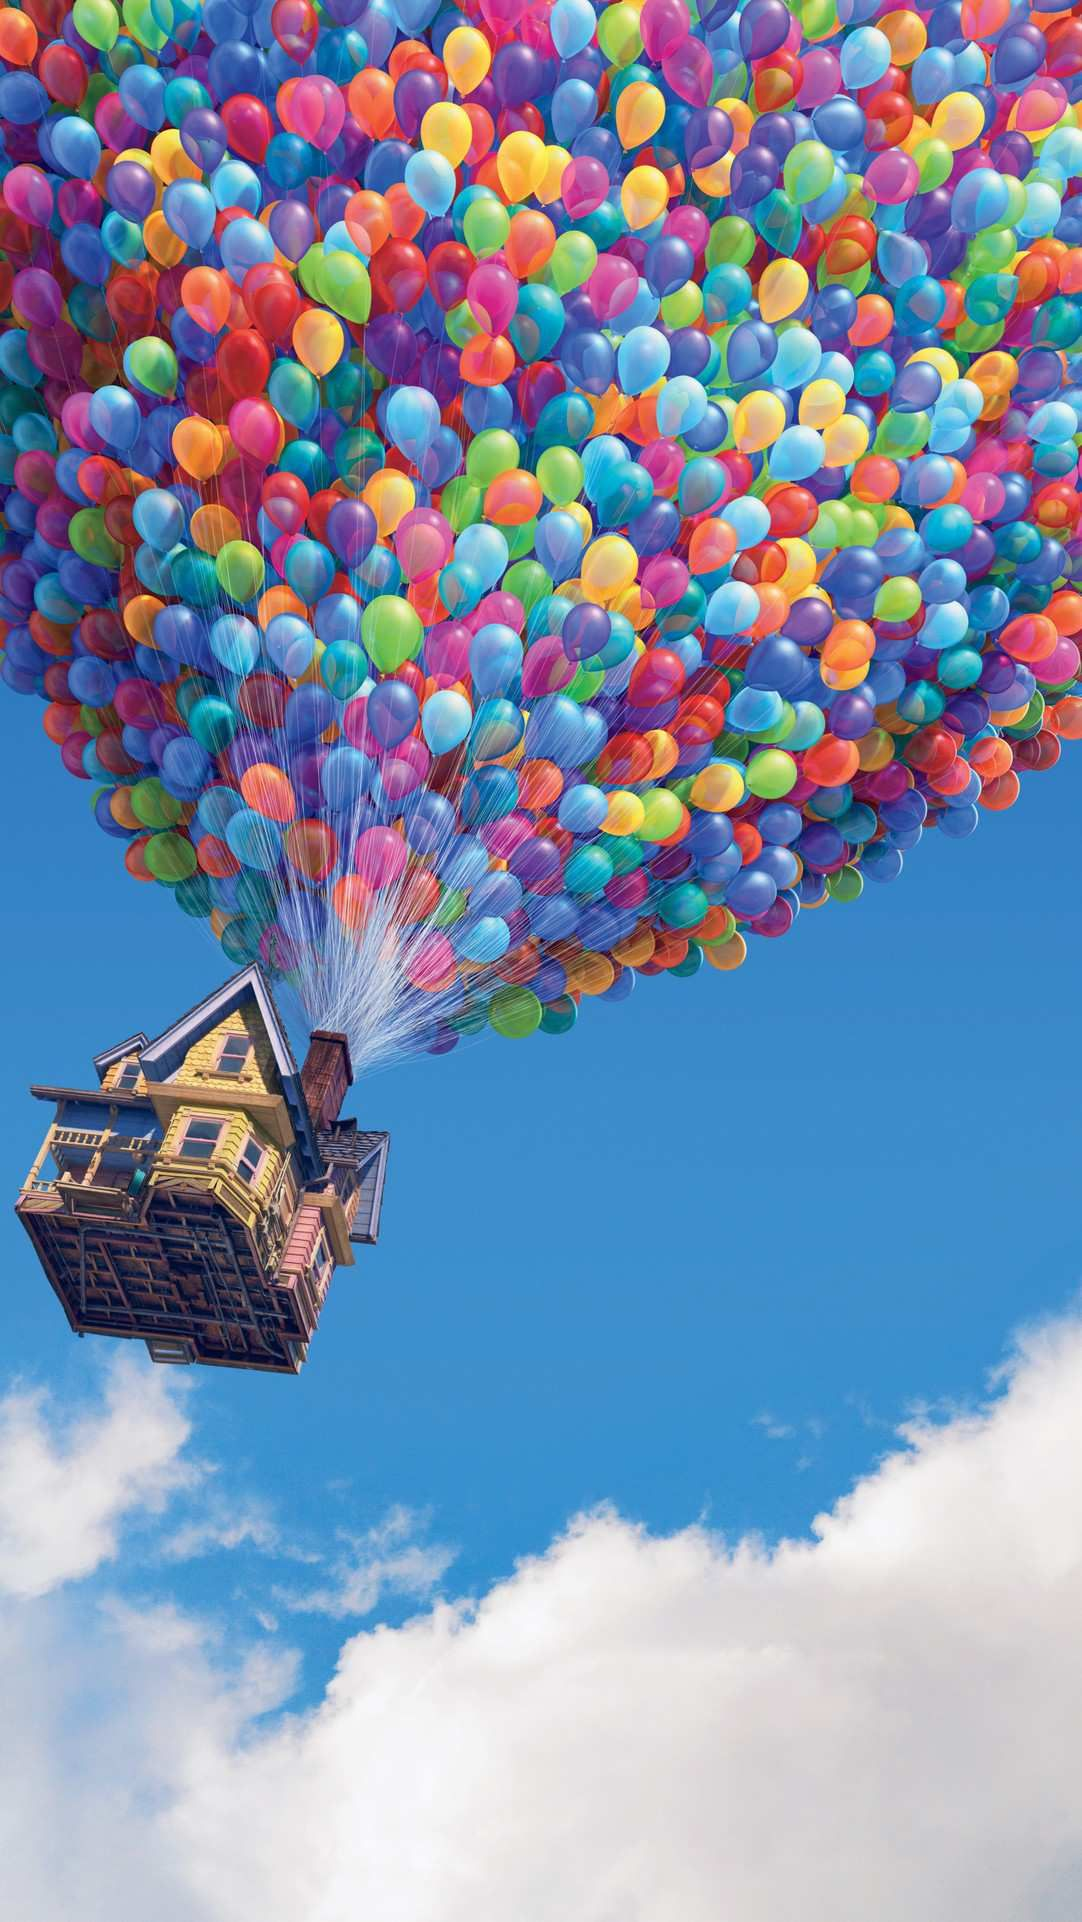 Up movie iphone wallpaper iphone wallpapers pinterest iphone